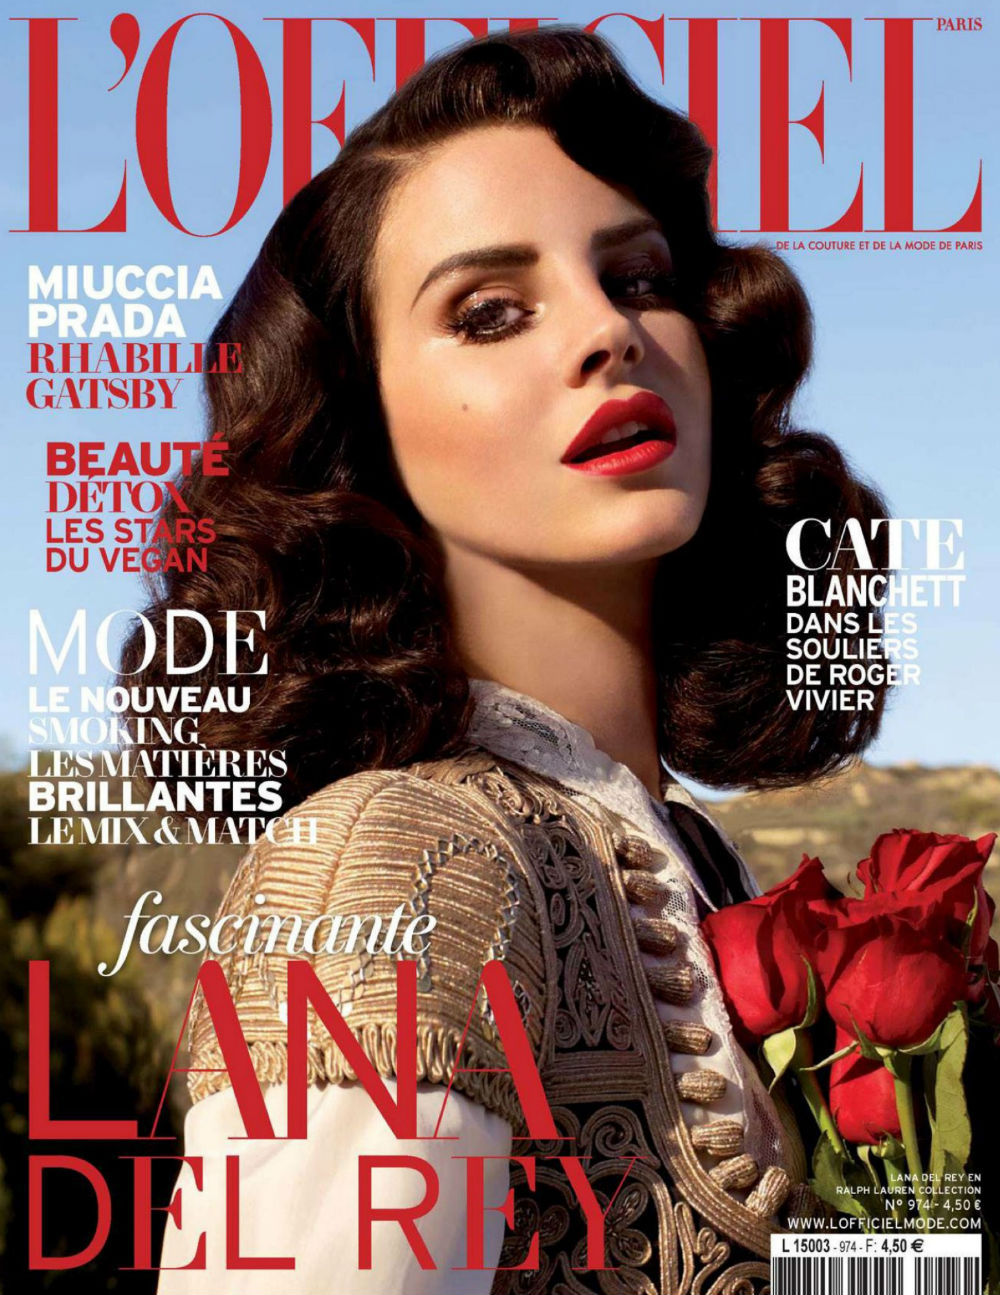 journaldelamode:  Lana Del Rey by Nicole Nodland for L'Officiel Paris April 2013